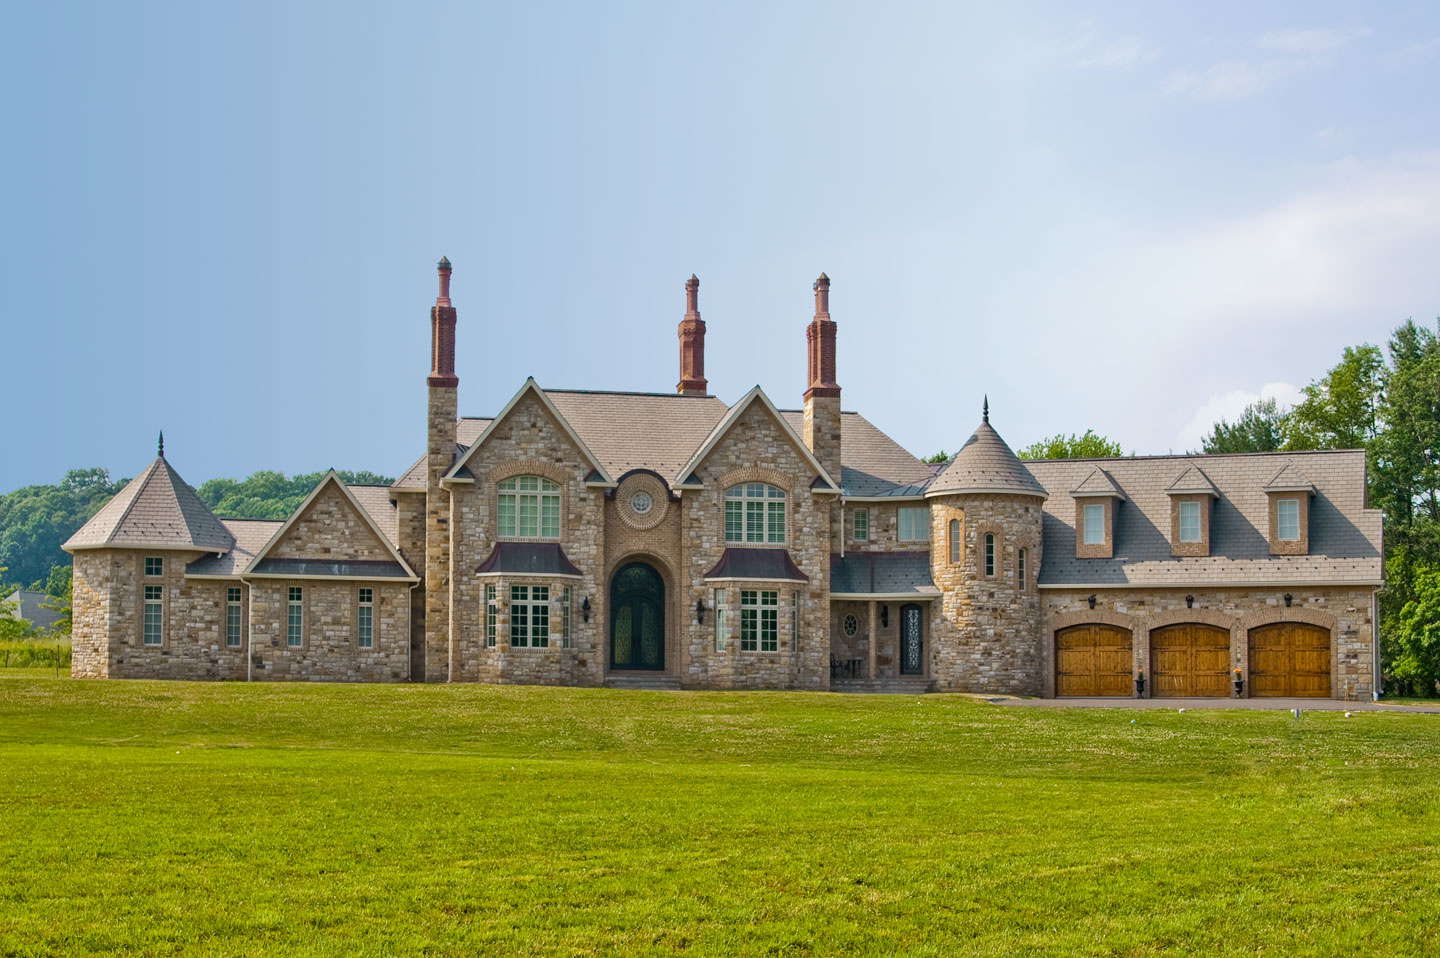 d alessio inspired architectural designs homes of the rich is a full service building design and construction company located in bucks county pa they specialize in gorgeous european french chateau style homes